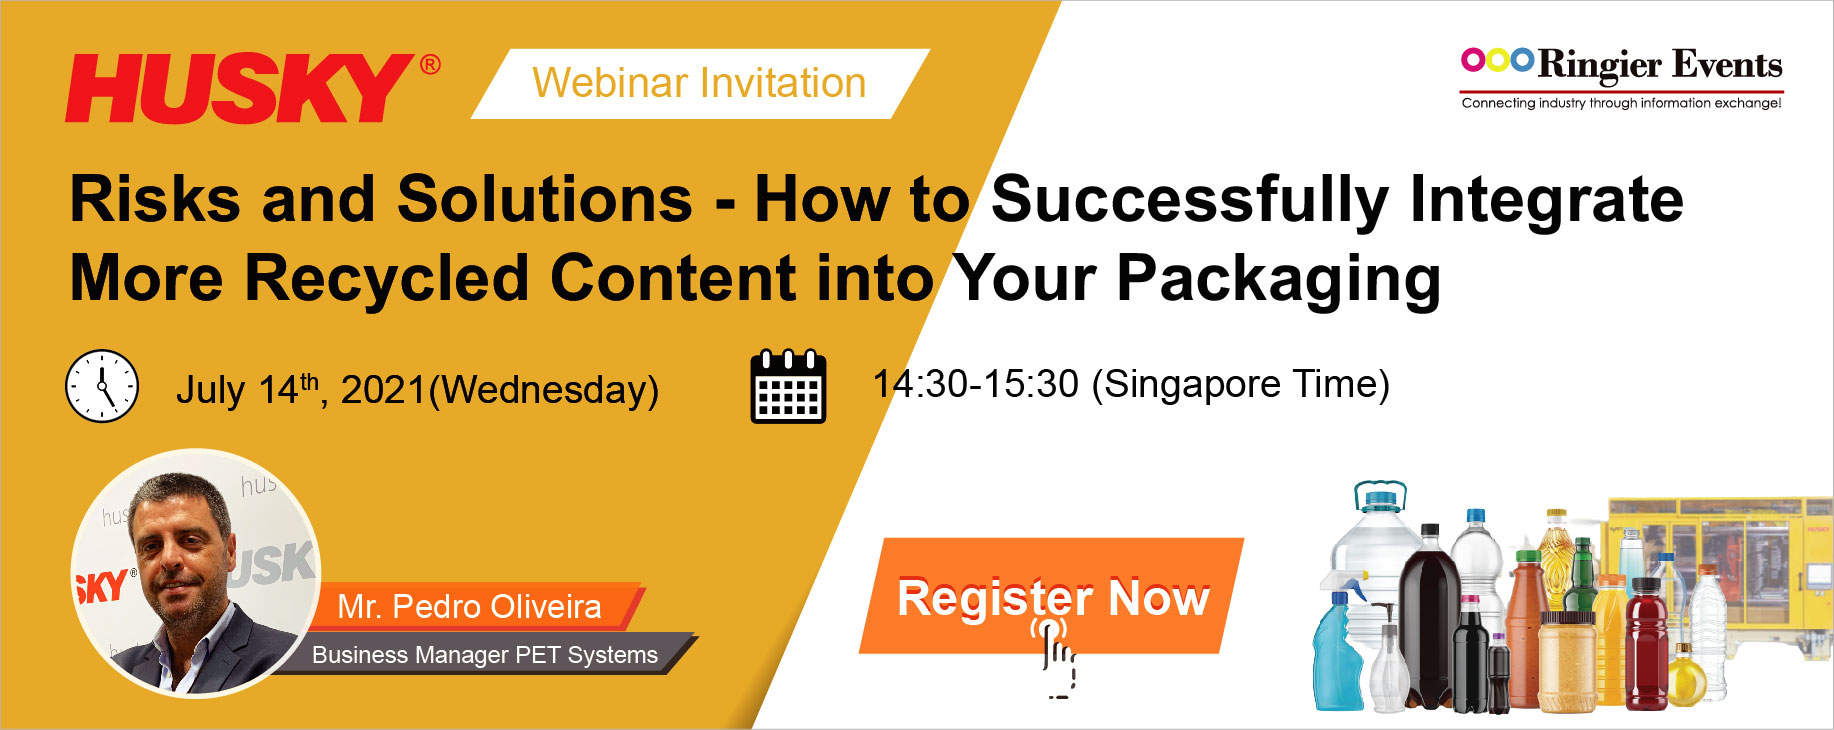 Risks and Solutions - How to Successfully Integrate More Recycled Content into Your Packaging